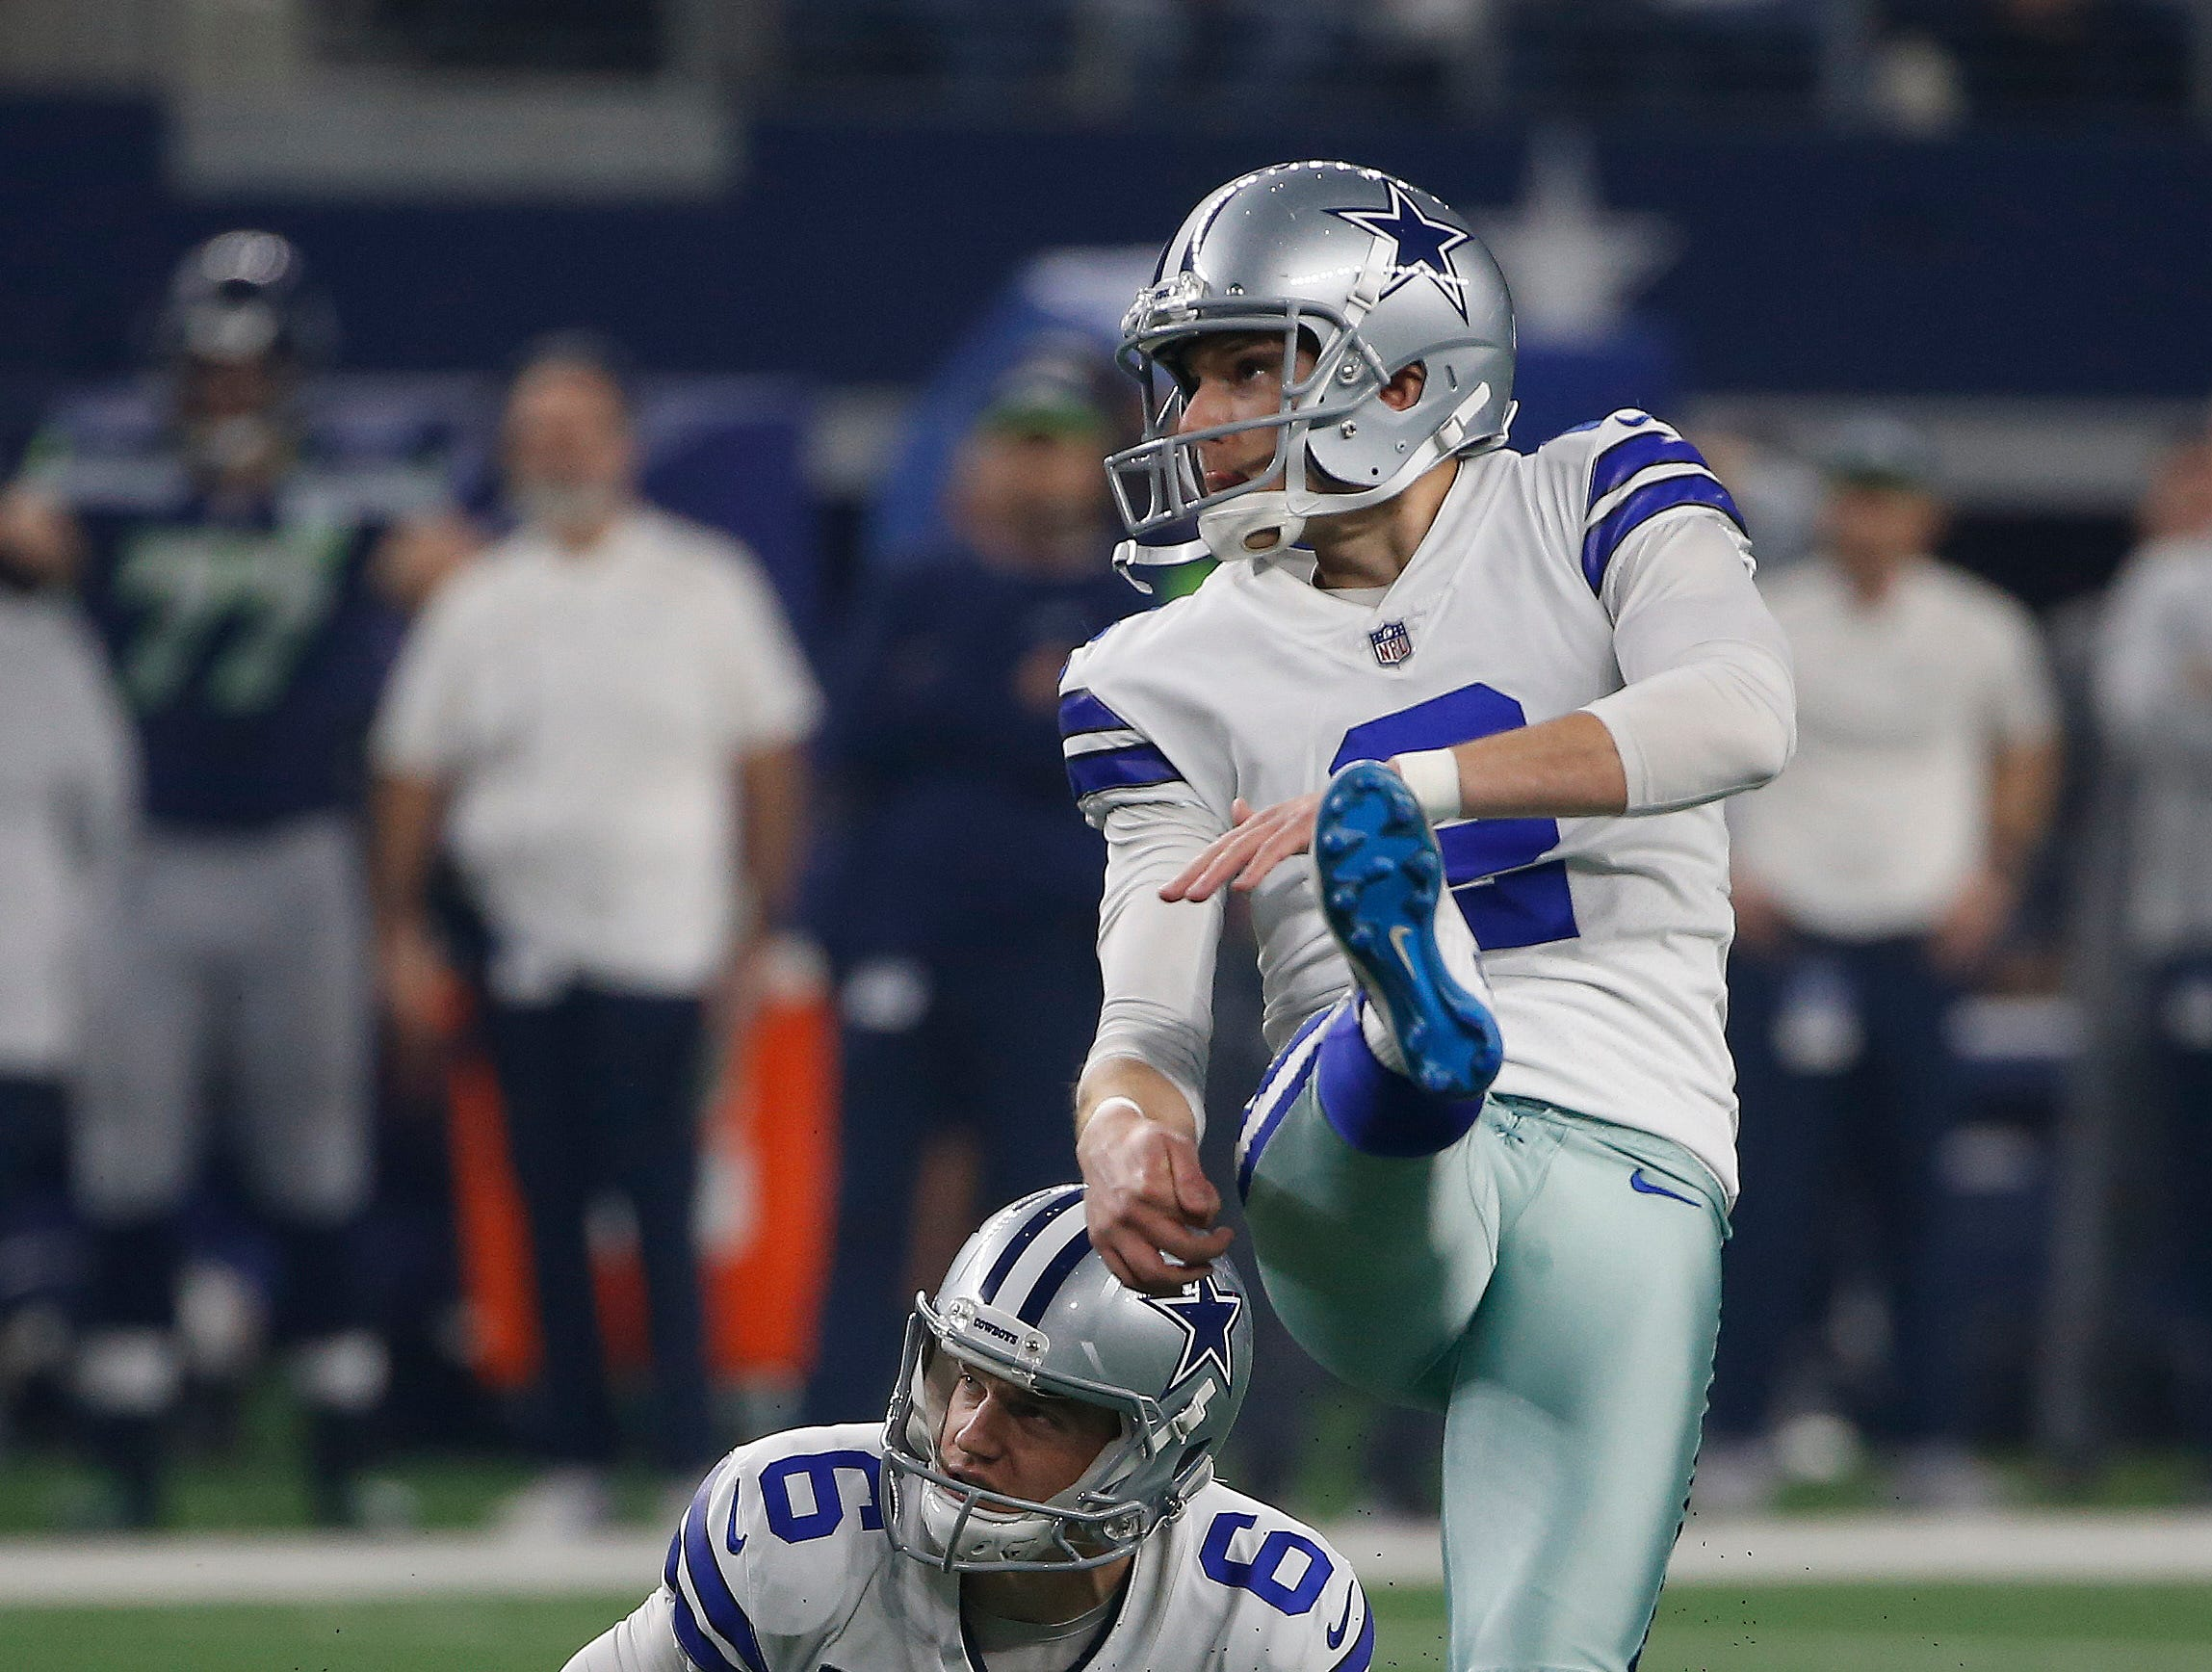 Dallas Cowboys place kicker Brett Maher (2) and punter Chris Jones (6) watch 39-yard field goal kick by Maher during the first half of the NFC wild-card NFL football game in Arlington, Texas, Saturday, Jan. 5, 2019. (AP Photo/Ron Jenkins)